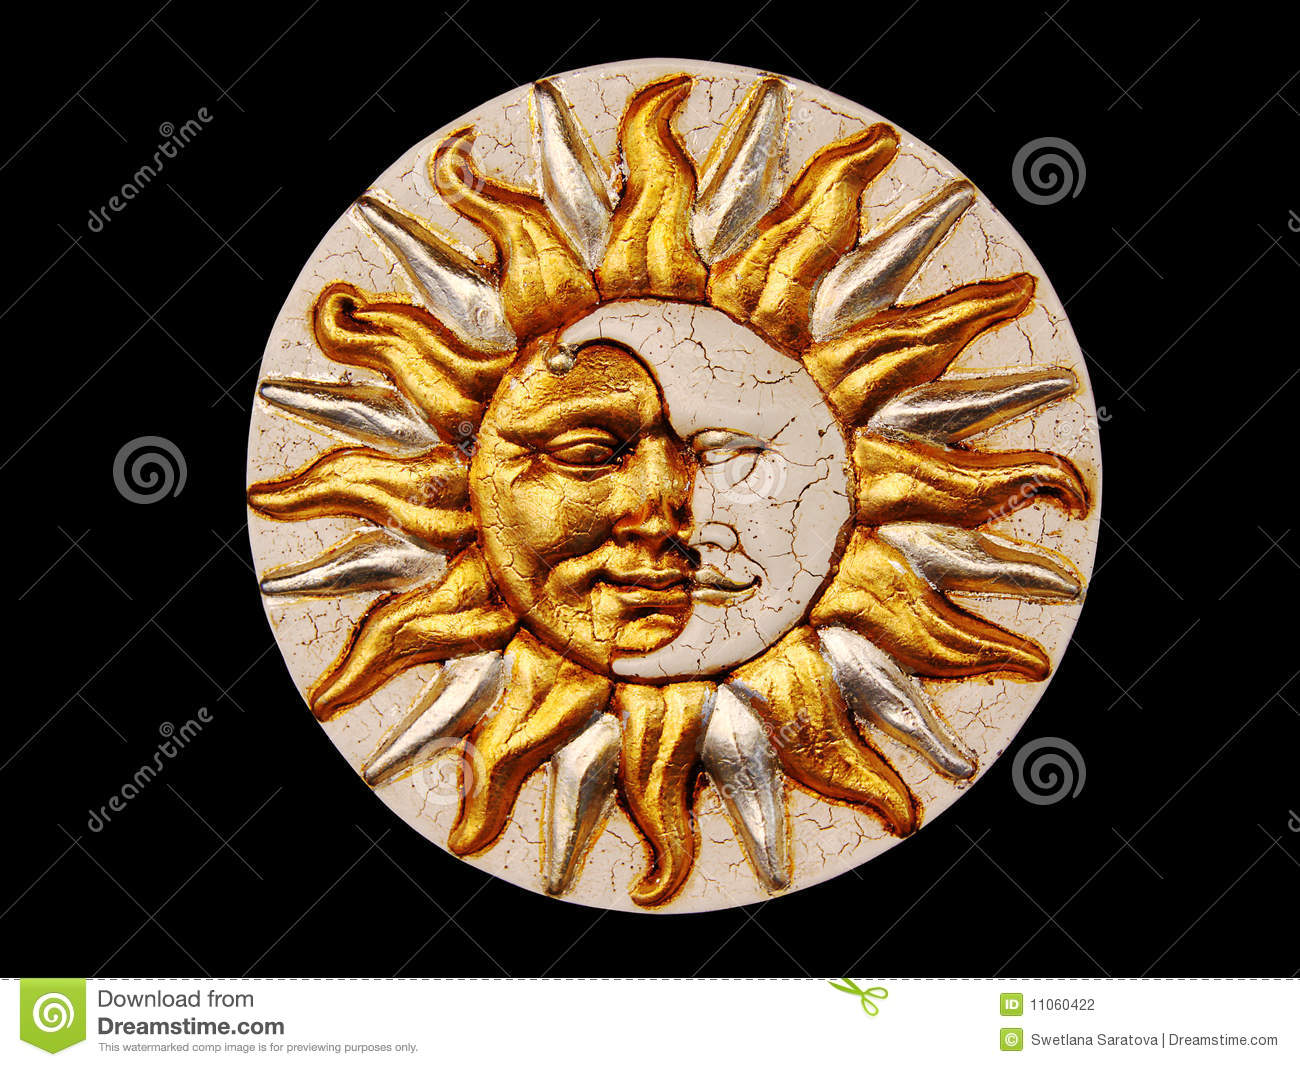 Garnier Masque Mask, The Moon And The Sun Stock Photography - Image: 11060422